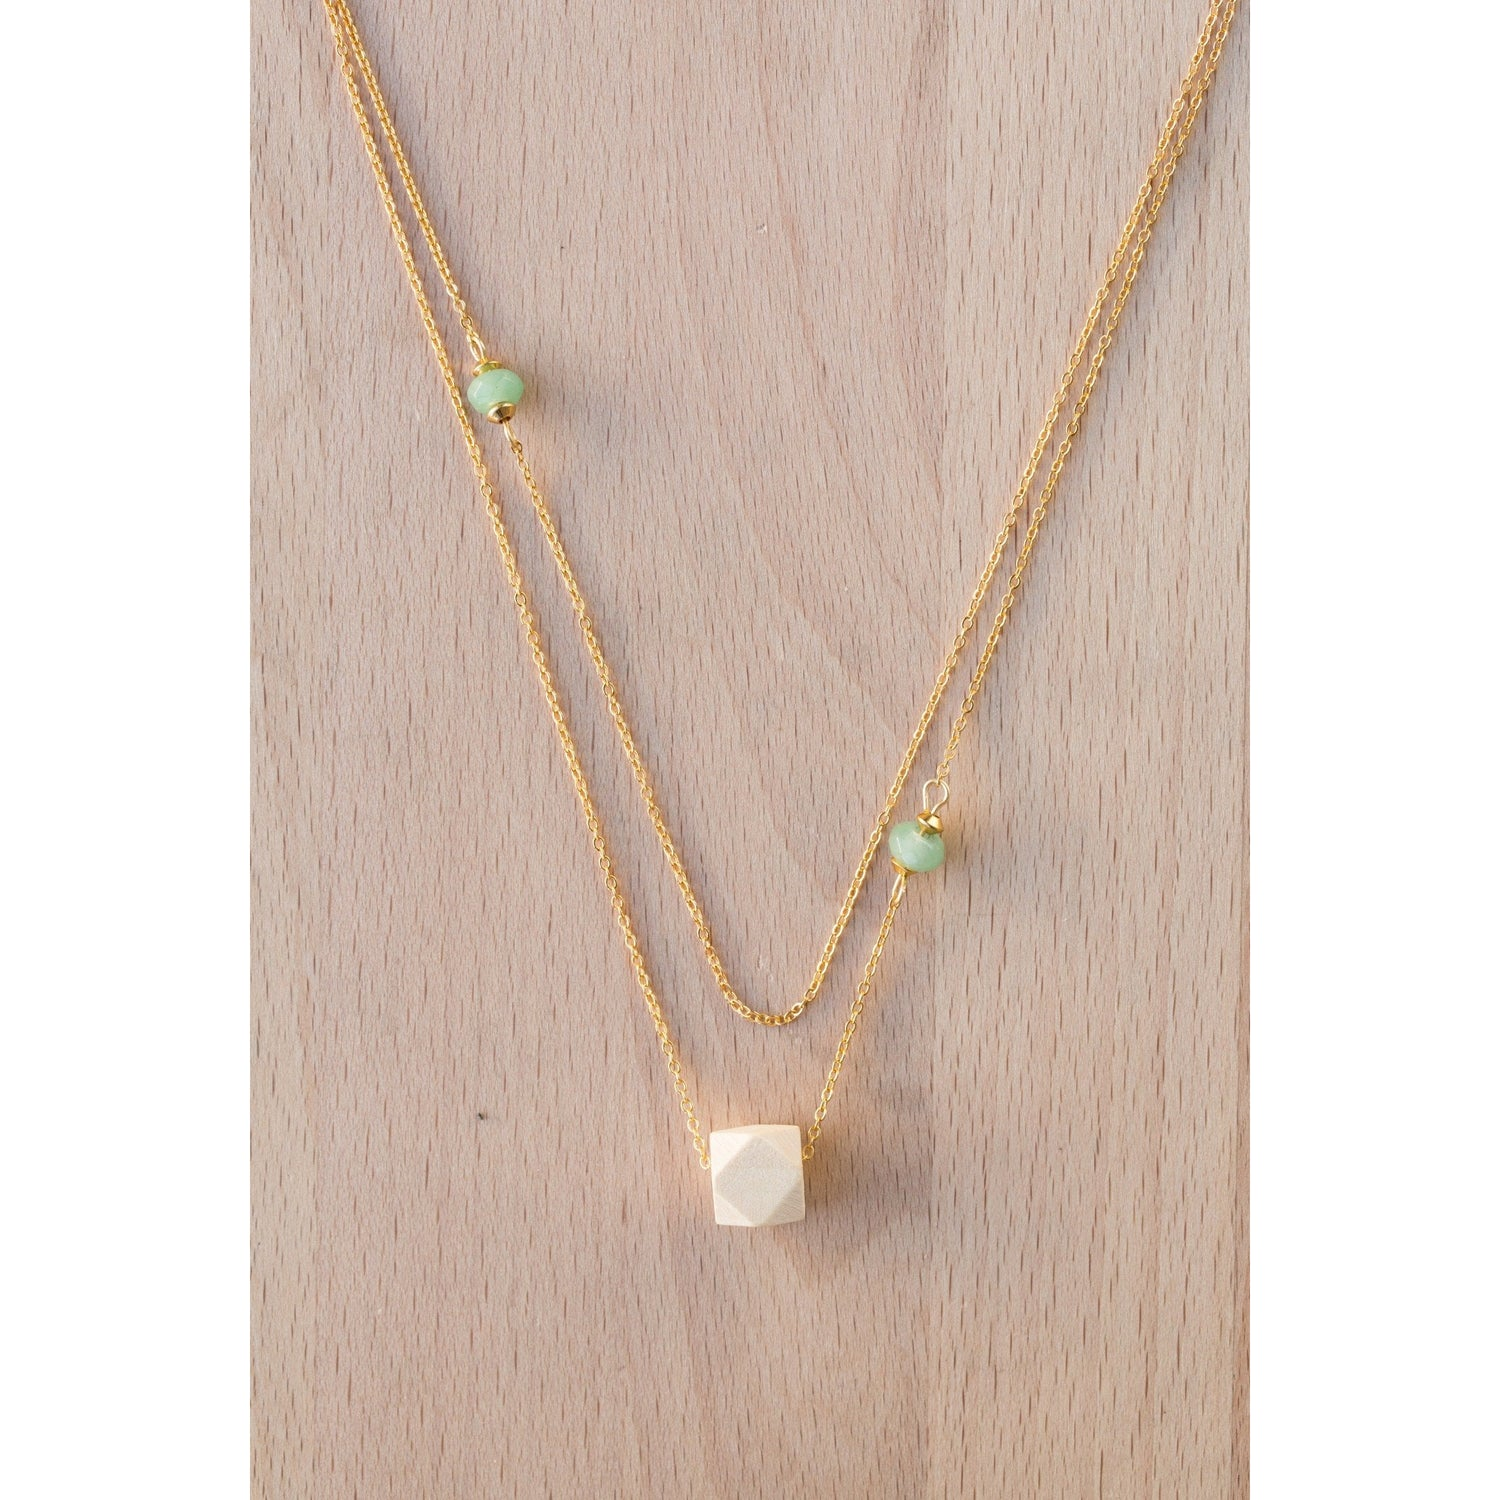 Layered Wood and Double Gemstones on Gold Chain